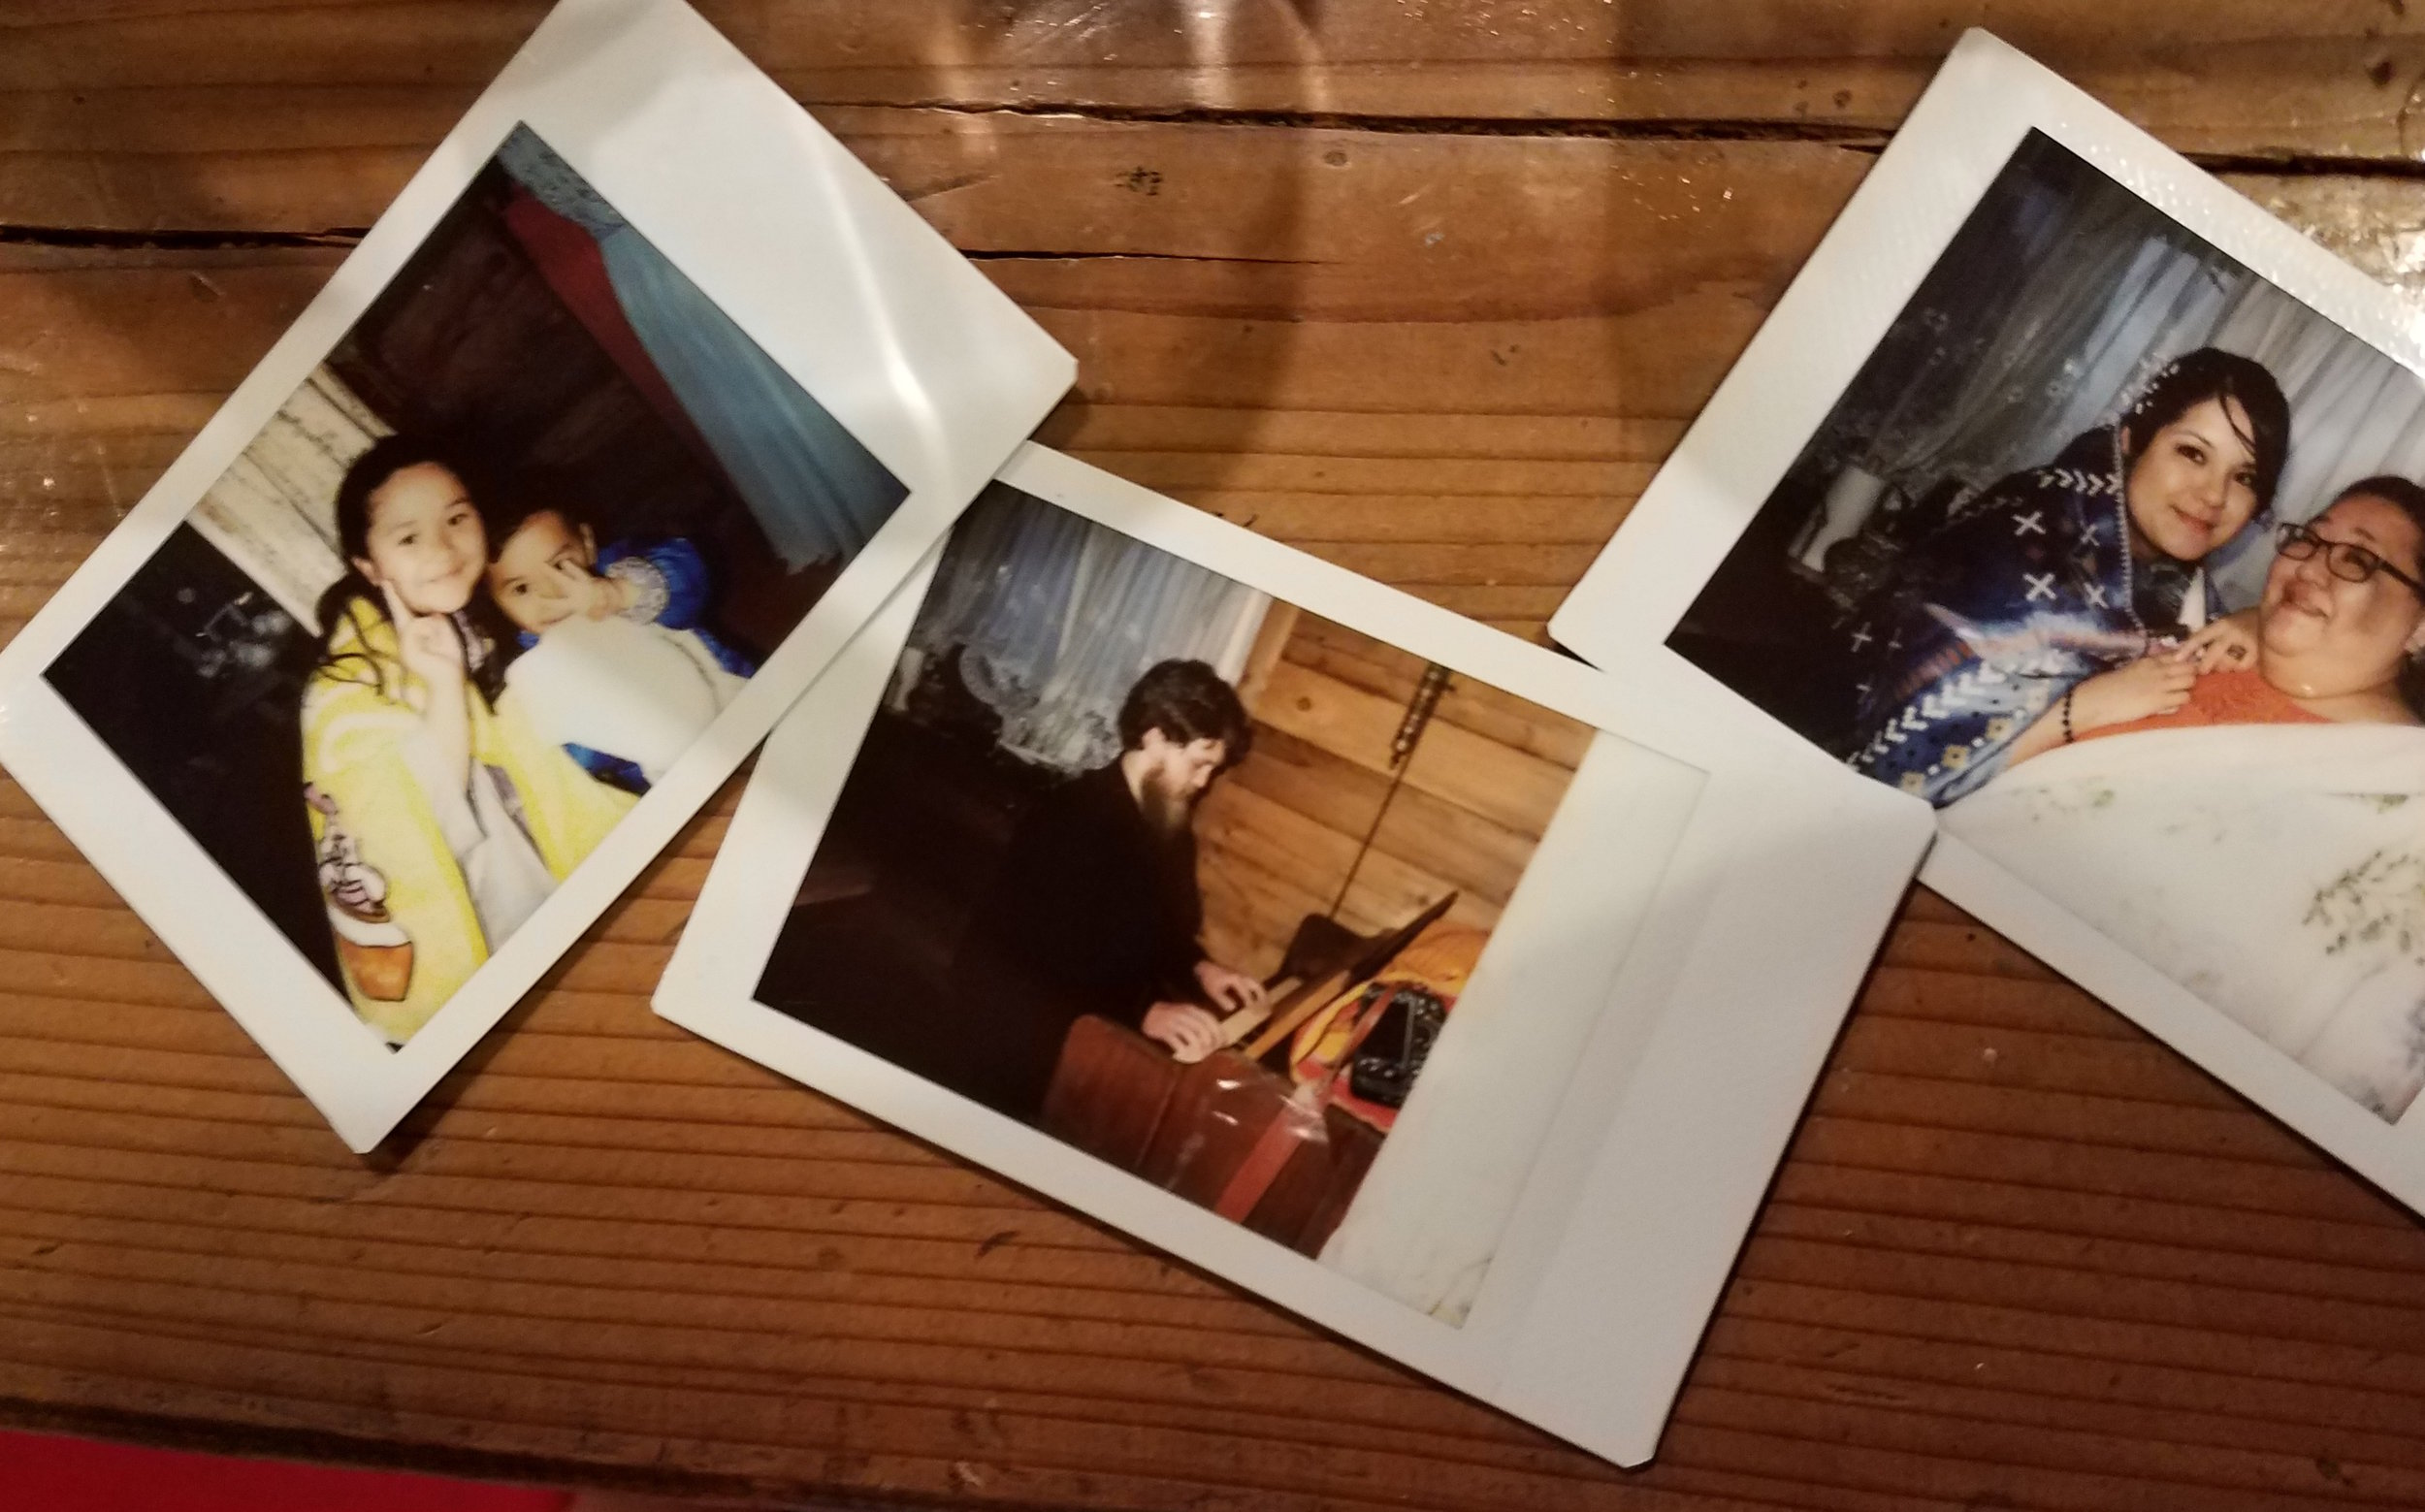 Polaroids from the night's festivities